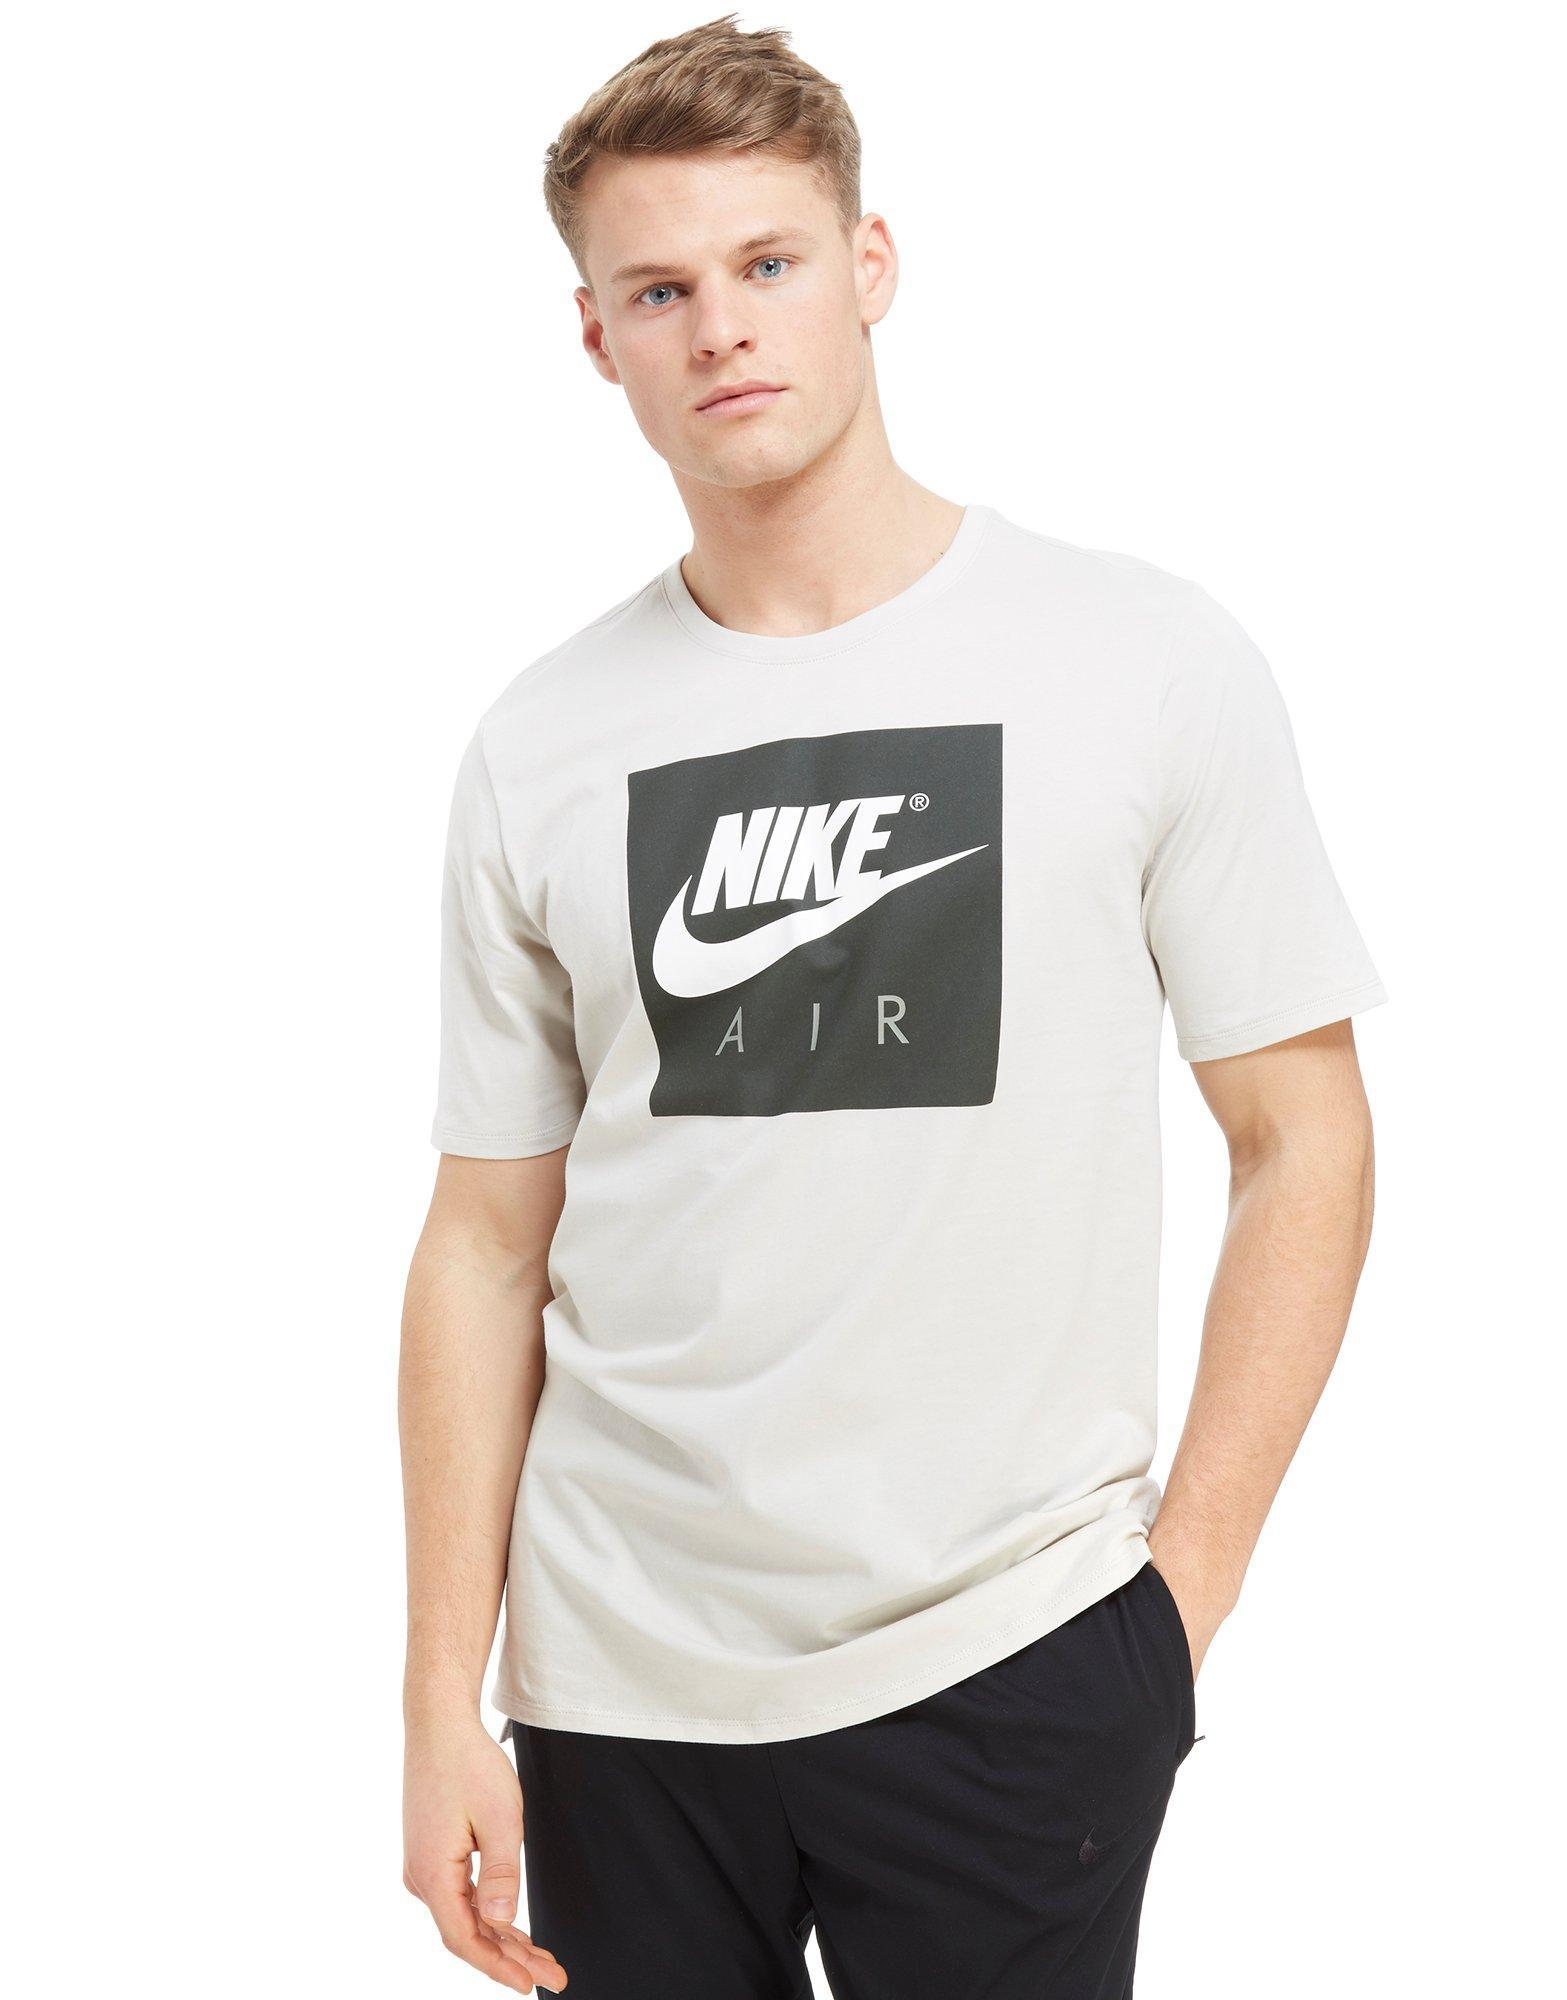 venta limitada ajuste clásico talla 40 Nike Cotton Air Box Logo T-shirt in Green for Men - Lyst